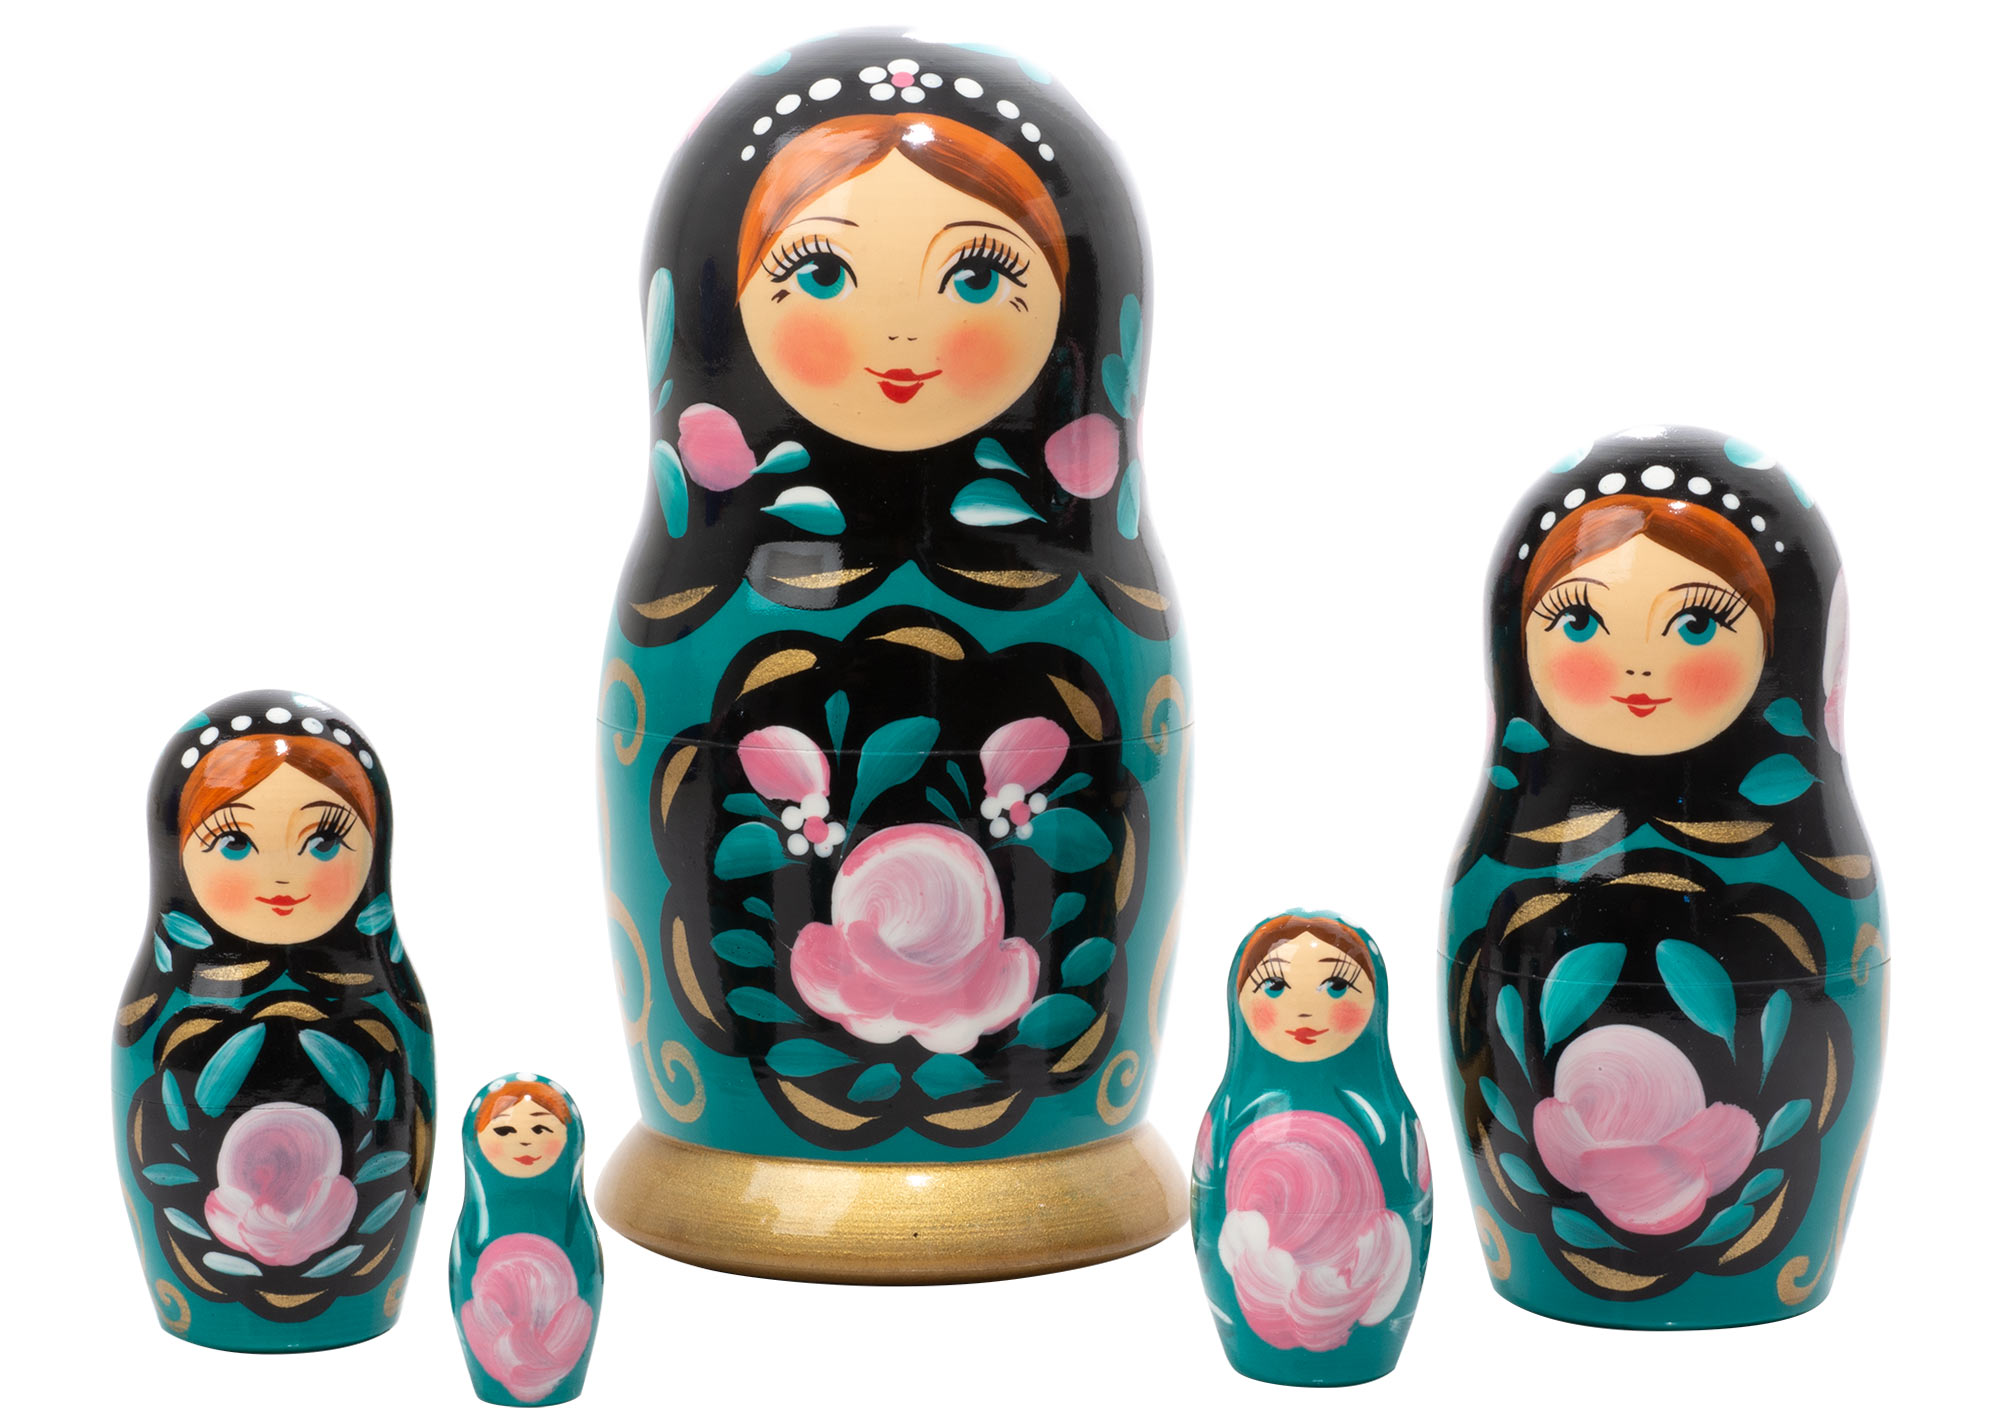 "Buy Teal Classical Art Nesting Doll 5pc./6"" at GoldenCockerel.com"